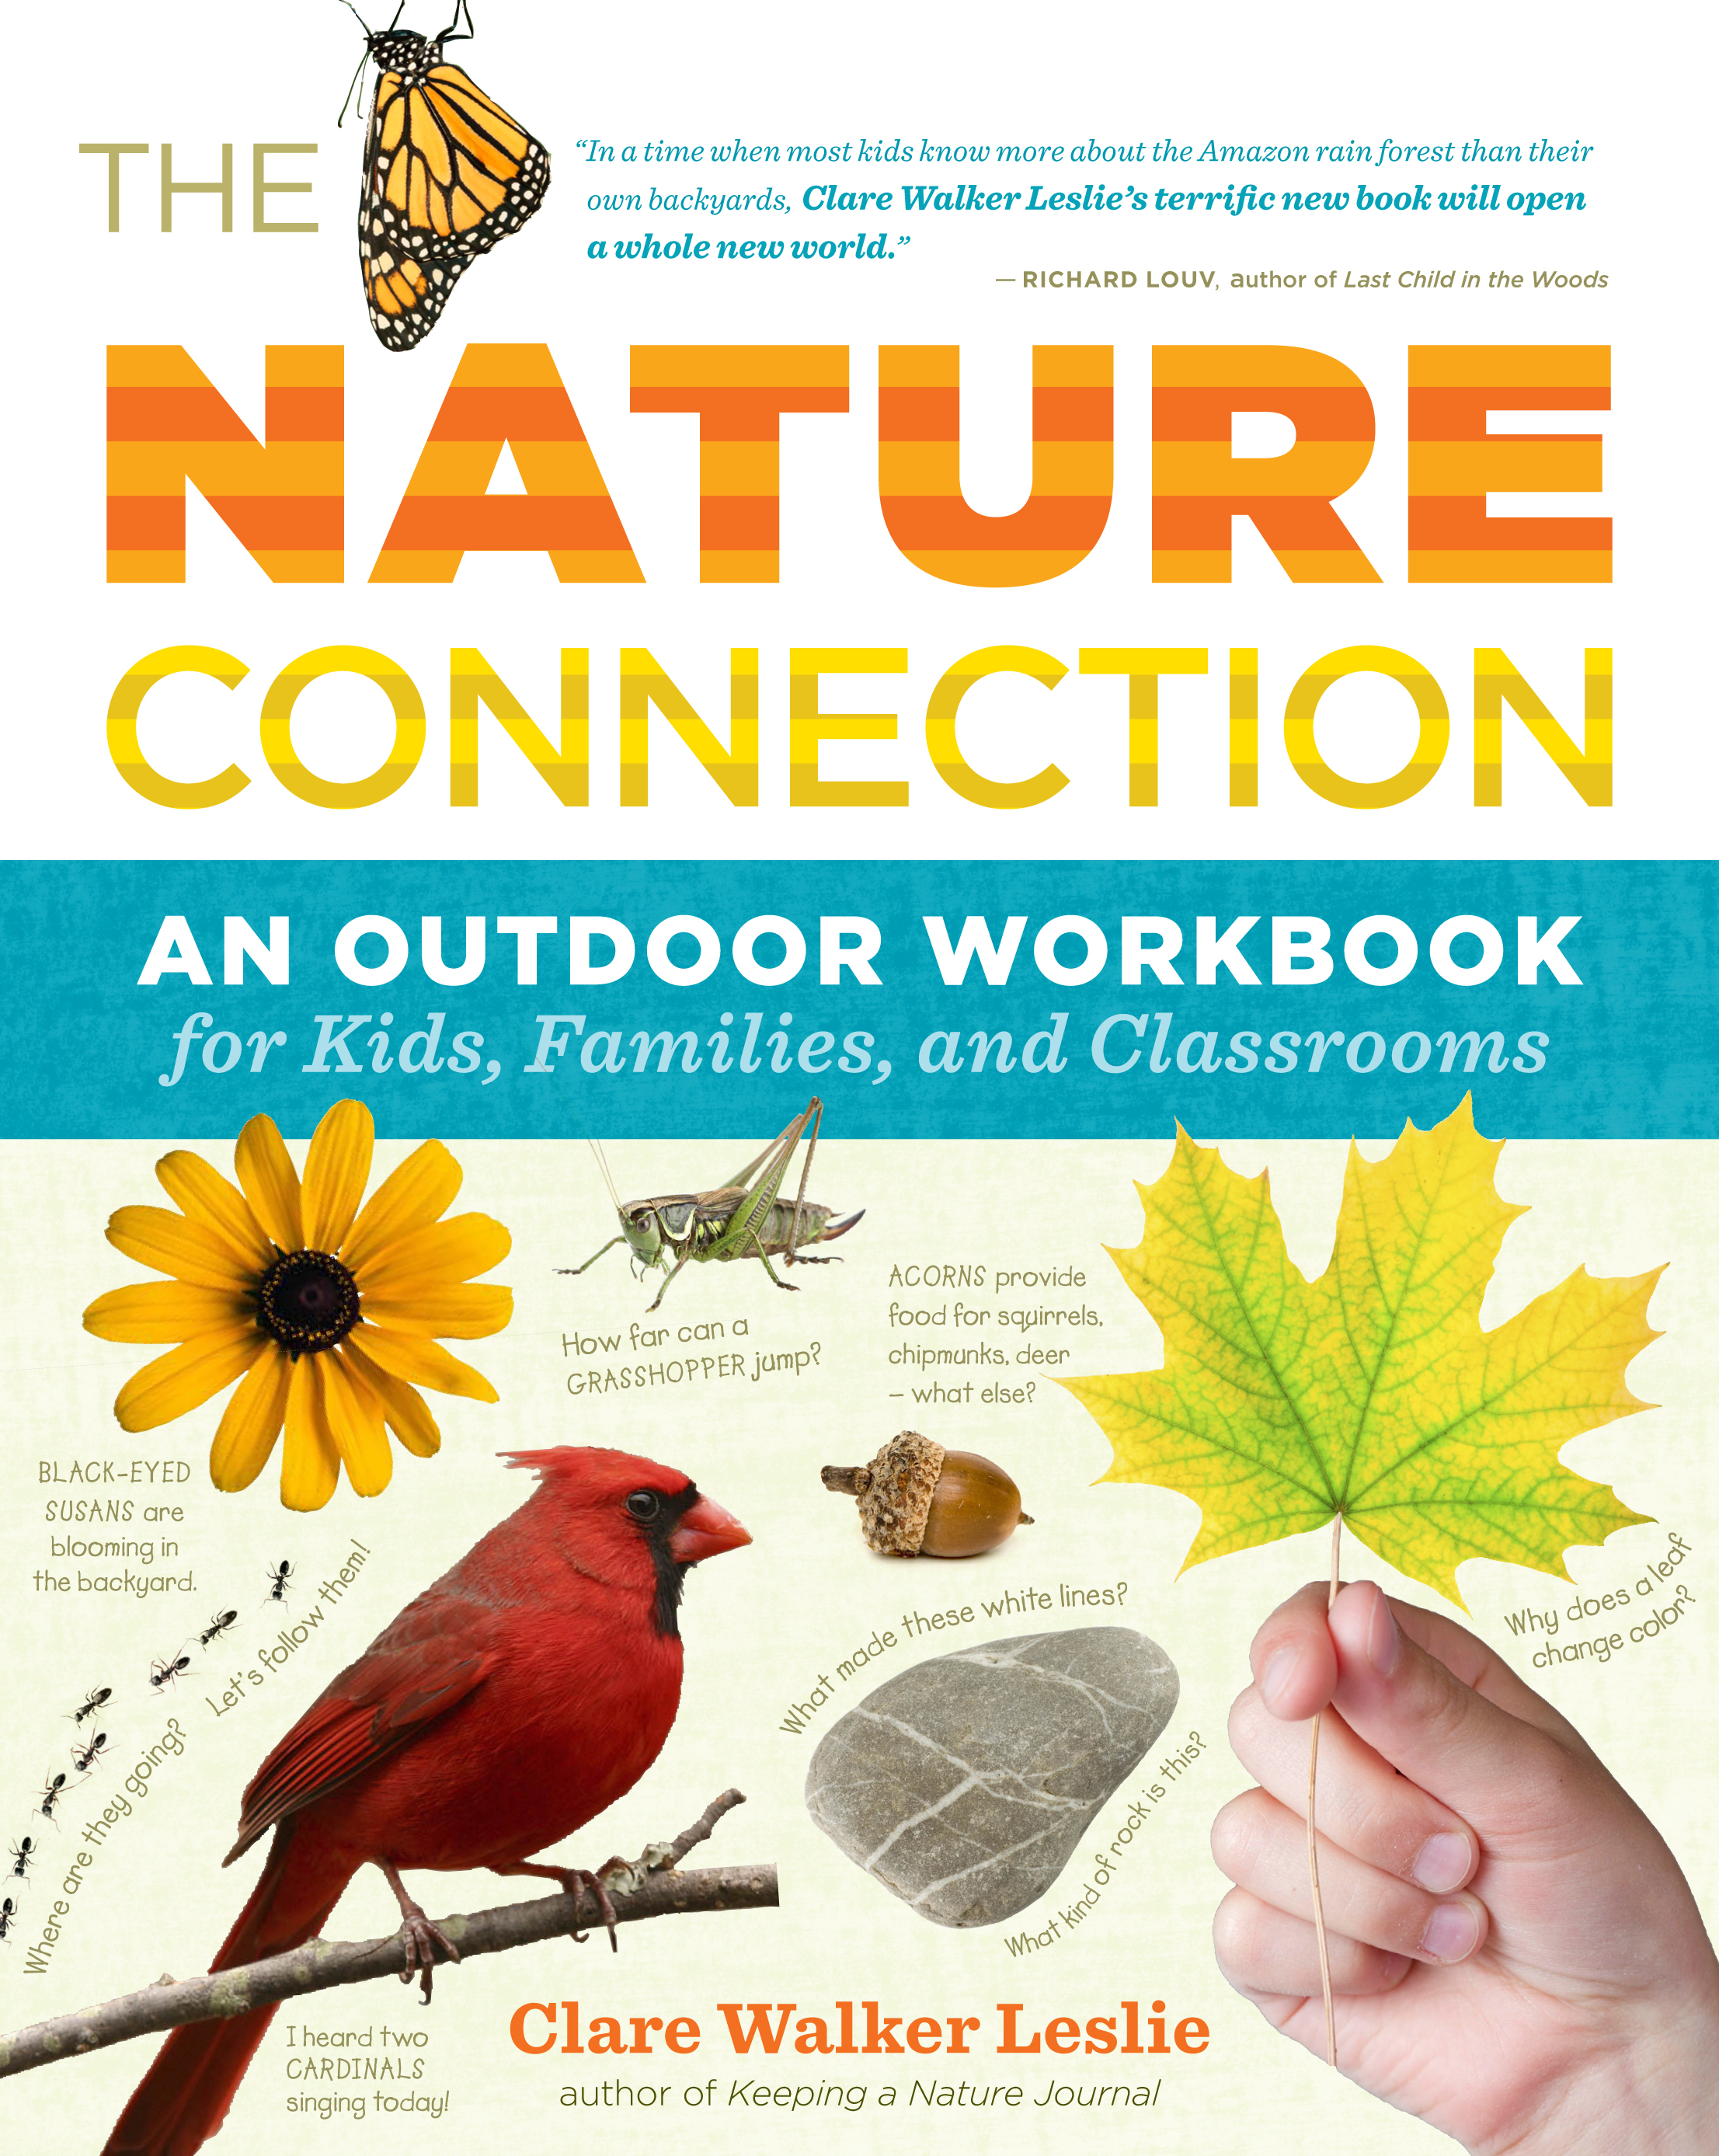 The Nature Connection An Outdoor Workbook for Kids, Families, and Classrooms - Clare Walker Leslie